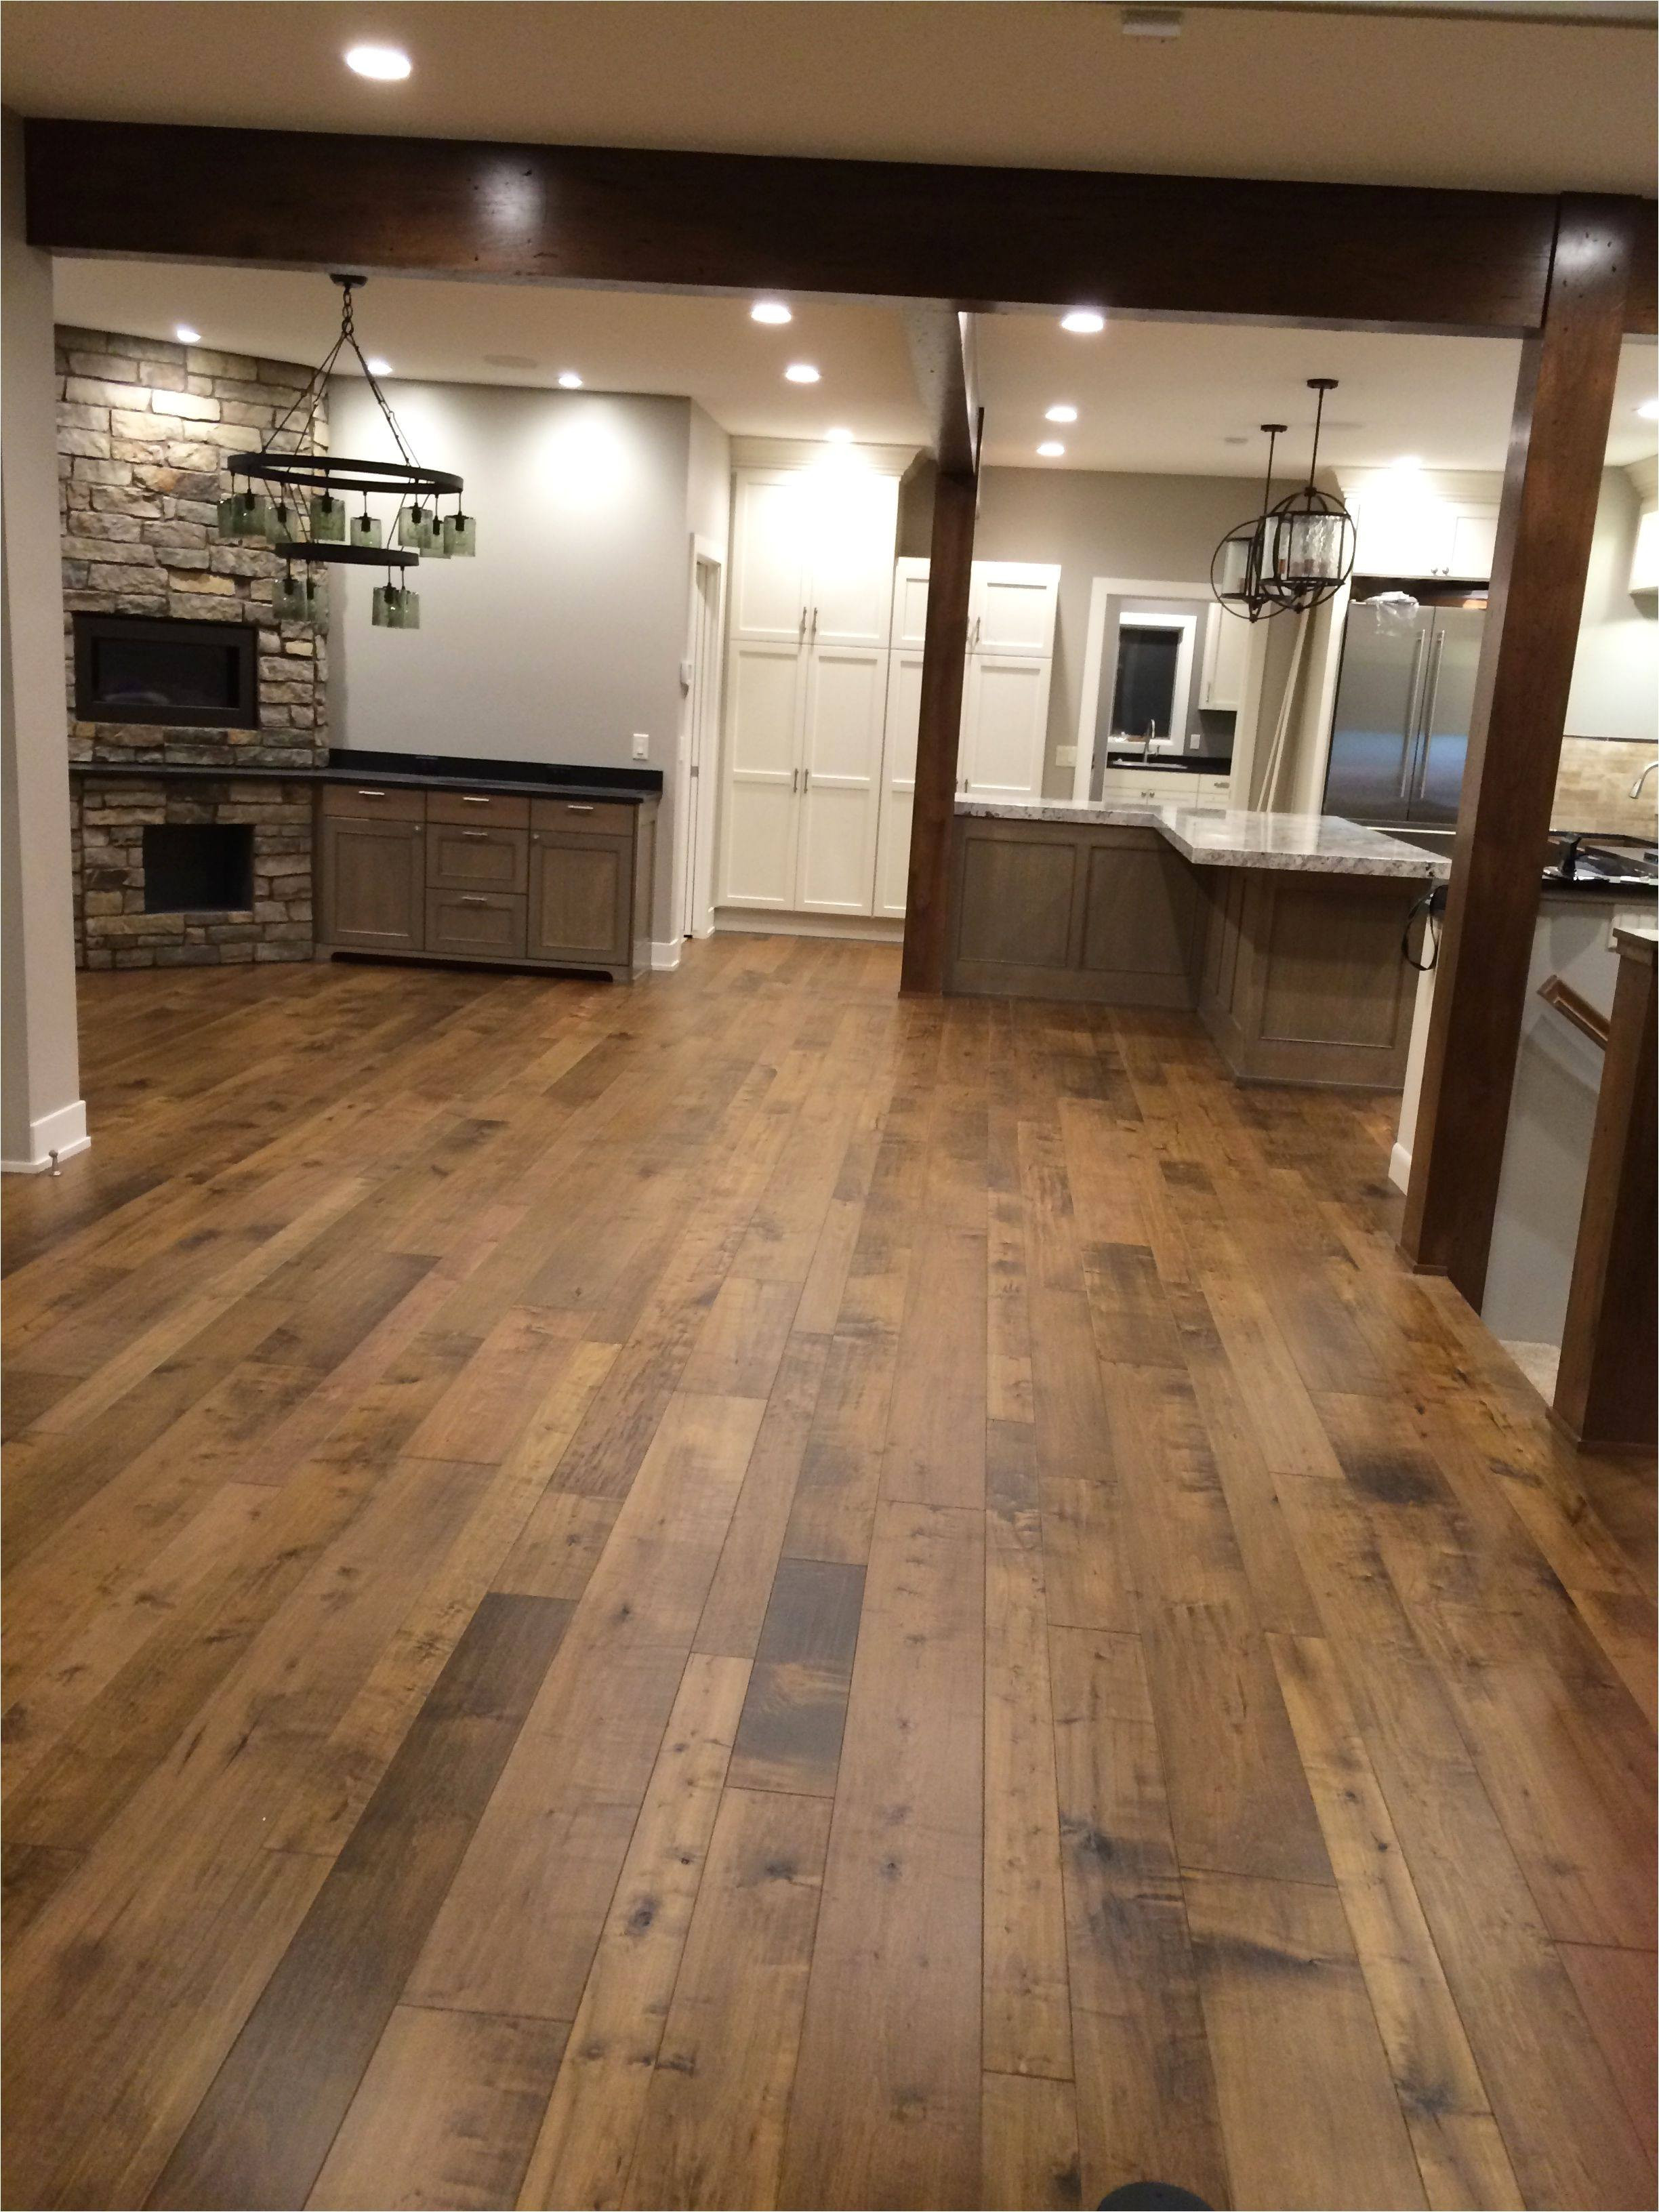 owens hardwood flooring distributors of 15 hardwood flooring showroom near me on a budget best flooring ideas inside hardwood flooring stores near me hardwood flooring panies near me flooring sale near me stock 0d